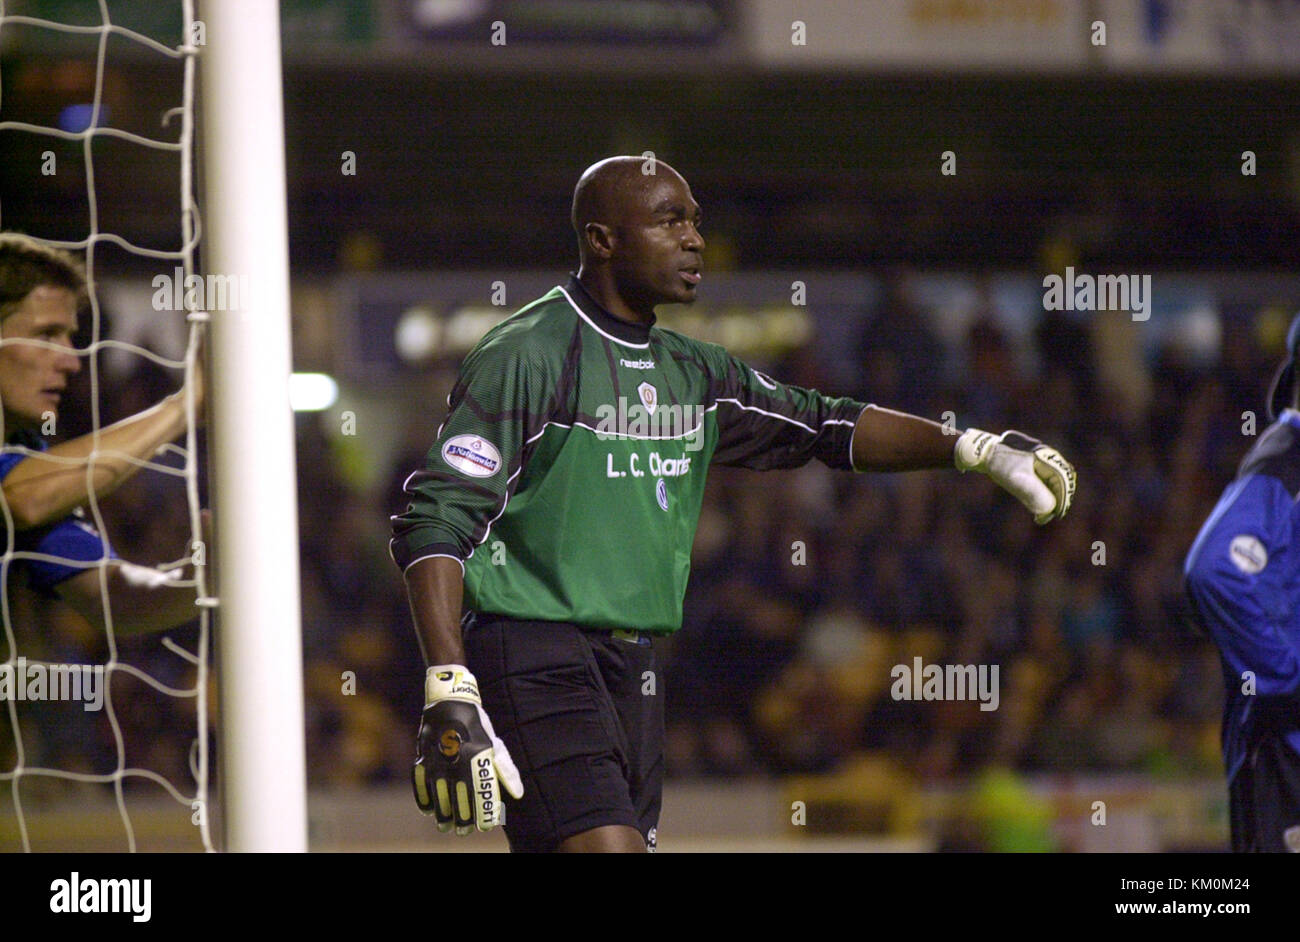 Crewe Alexandra goalkeeper Ade Bankole 16 October 2001 - Stock Image